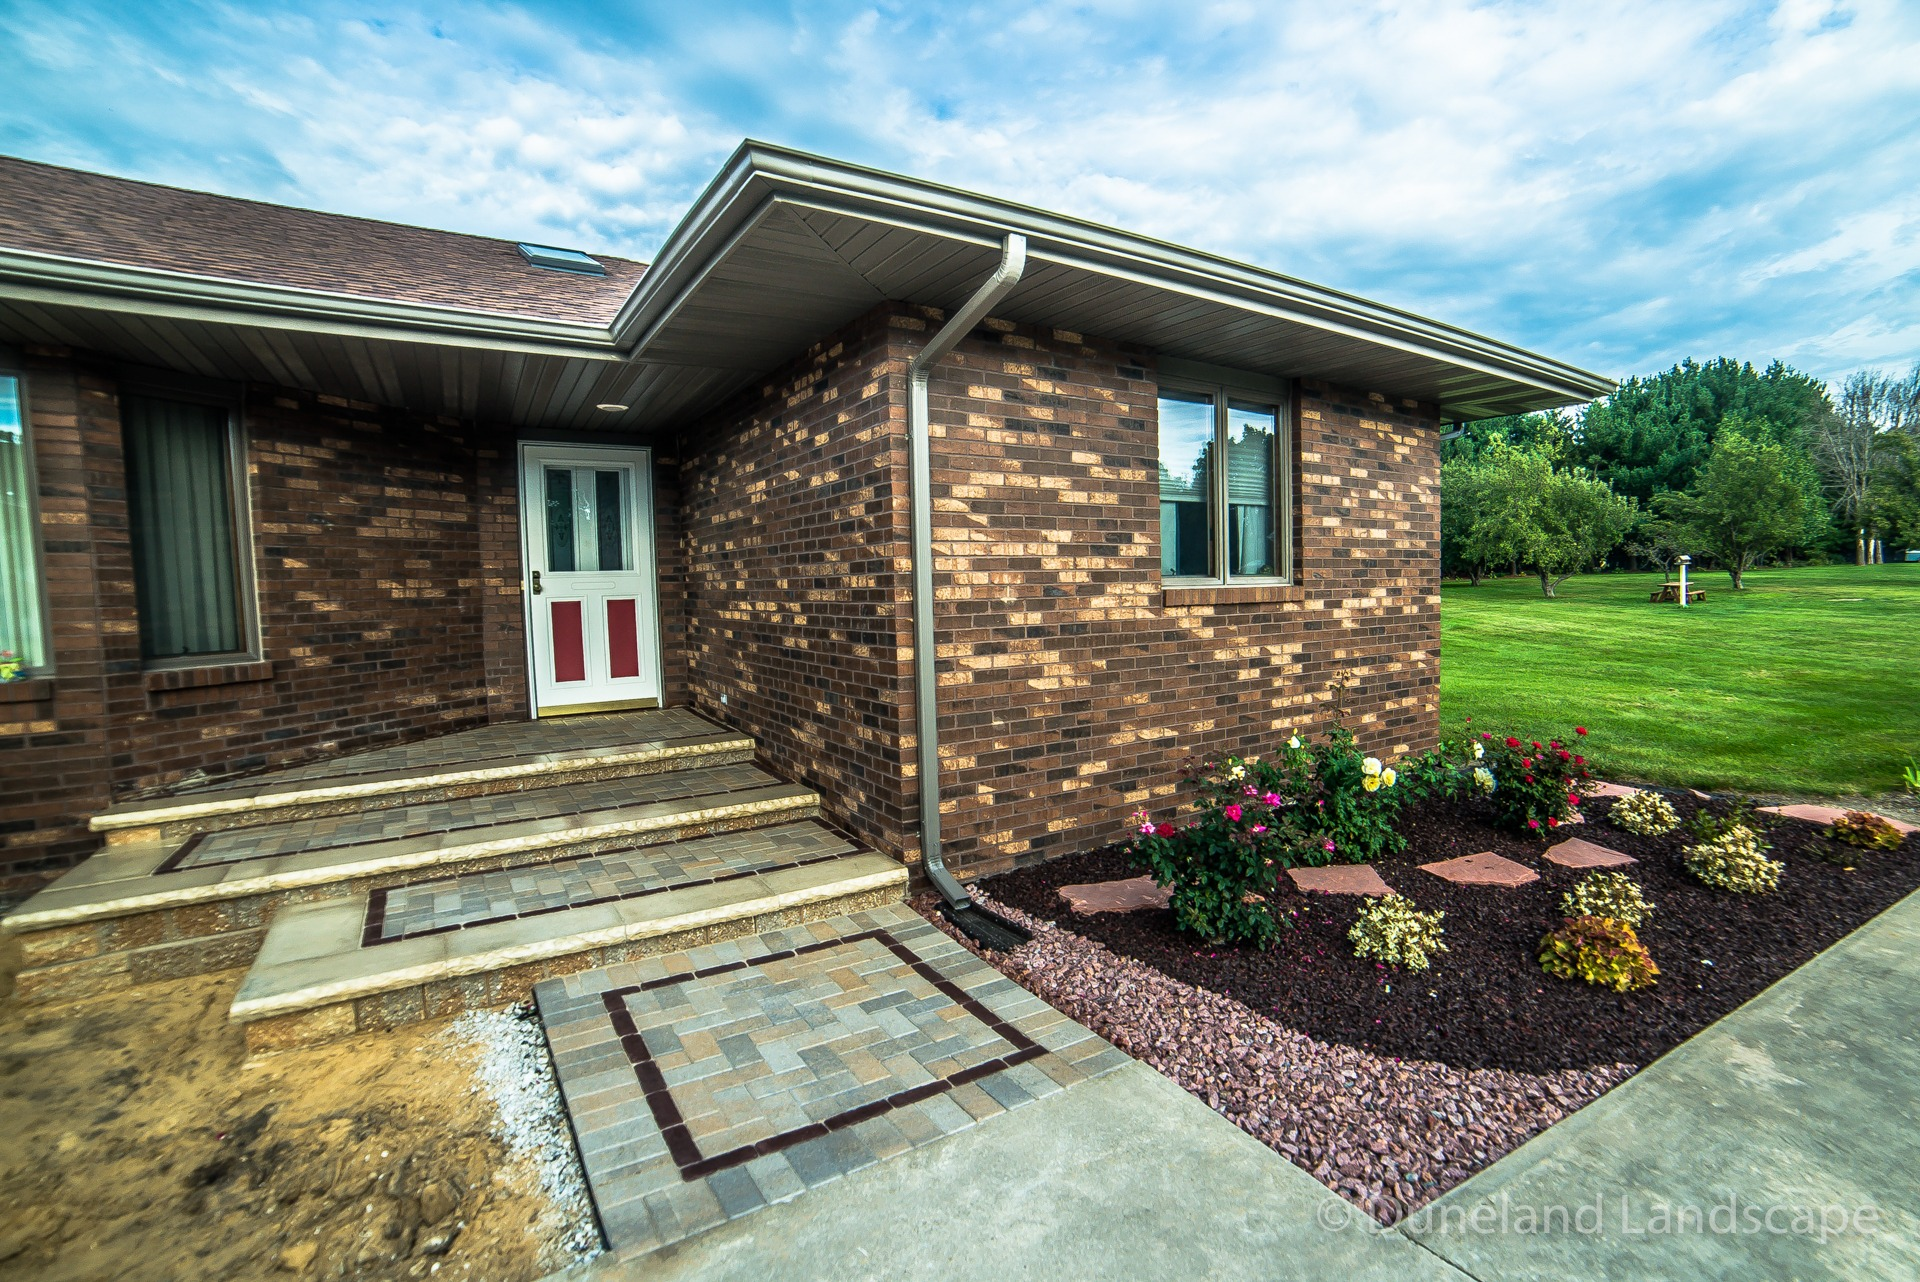 brick porch steps and landscaping